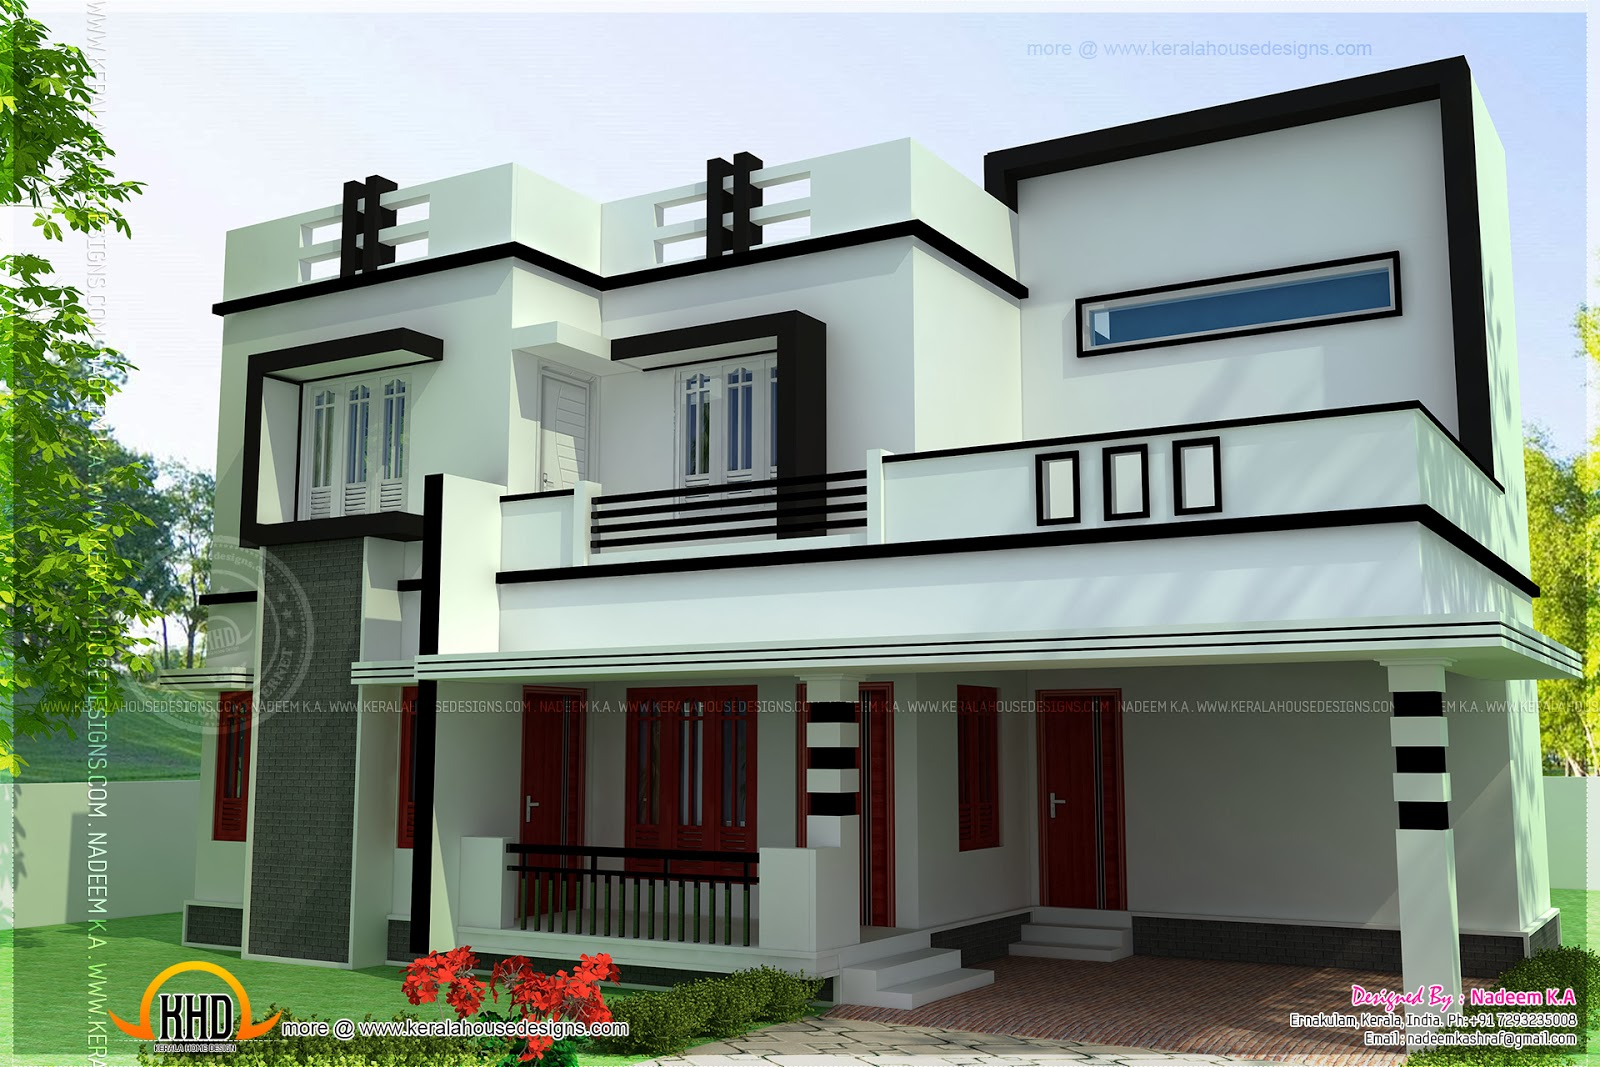 Flat roof 4 bedroom modern house kerala home design and - Flat roof home designs ...